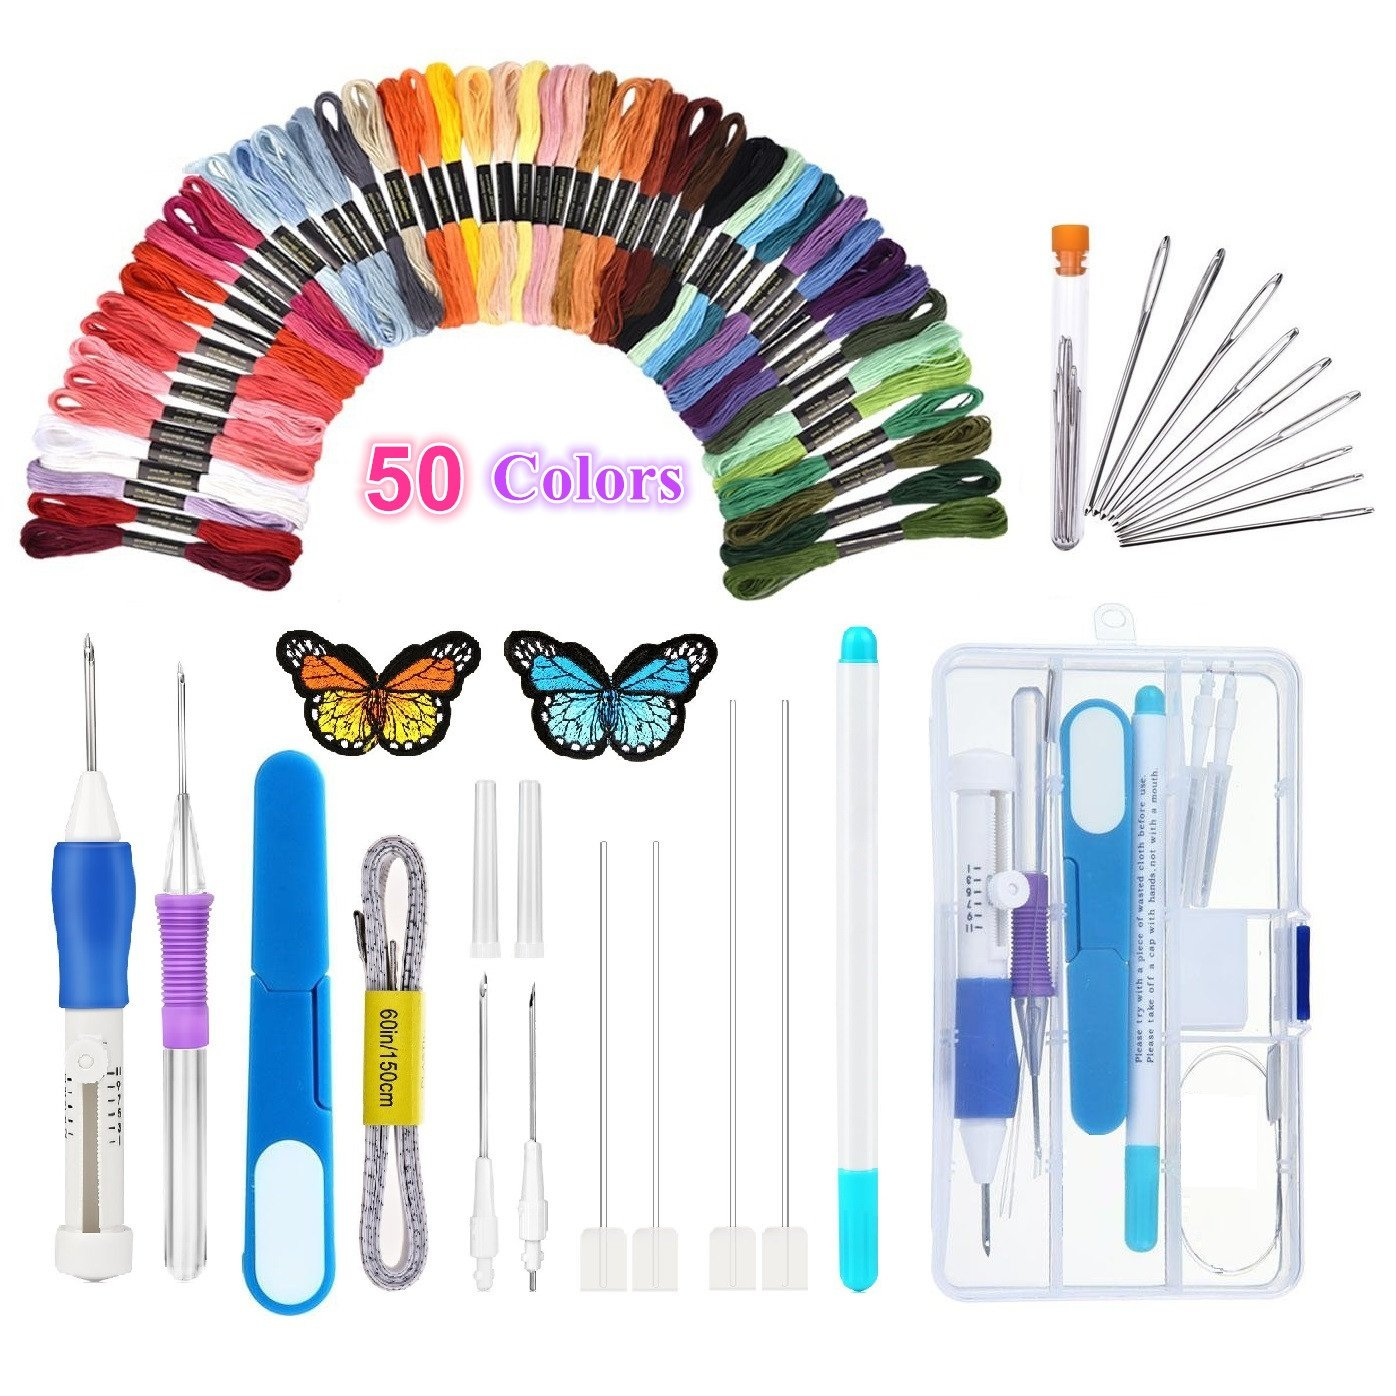 Magic Embroidery Pen Punch Needle,Embroidery Pen Set,Embroidery Patterns Punch Needle Kit Craft Tool,Including 50 Color Threads for DIY Threaders Sewing Knitting Topus